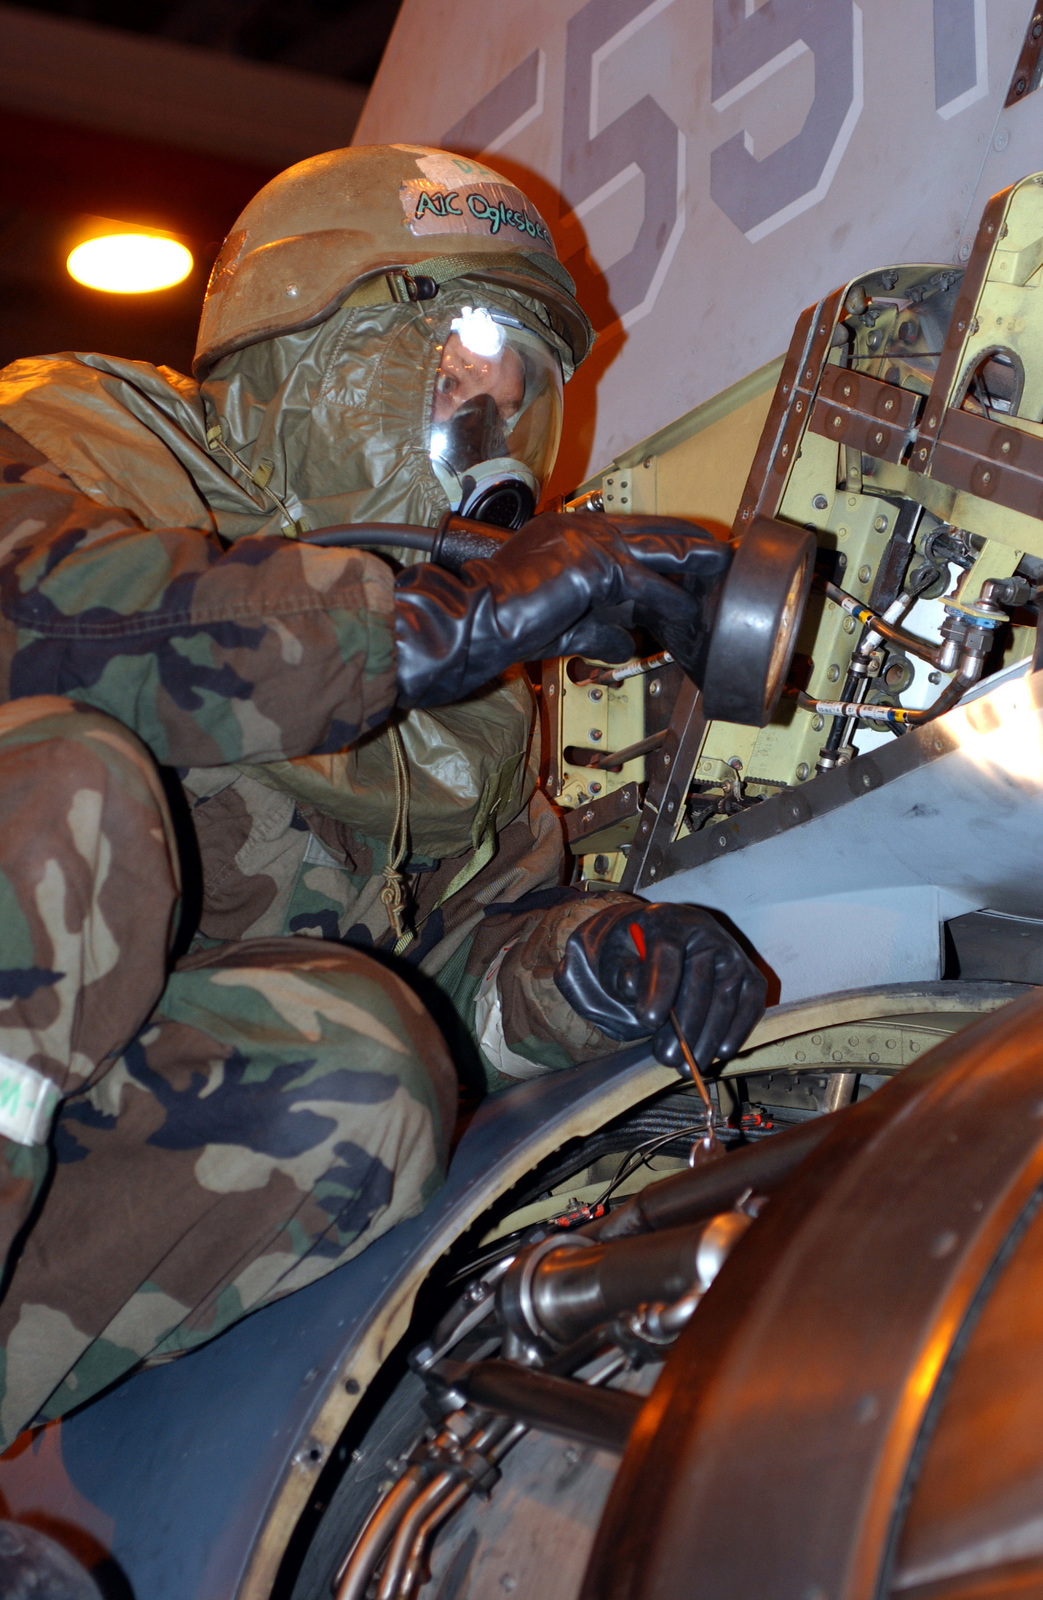 US Air Force (USAF) AIRMAN First Class (A1C) Jared Oglesbee, Crewchief, 31st Aircraft Maintenance Squadron (AMXS), performs routine maintenance, while in Mission-Oriented Protective Posture response level 4 (MOPP-4), on an F-16 Fighting Falcon during the LOCAL SALTY NATION exercise. The LSN prepares members of the 31st Fighter Wing (FW) for an upcoming Tactical Evaluation